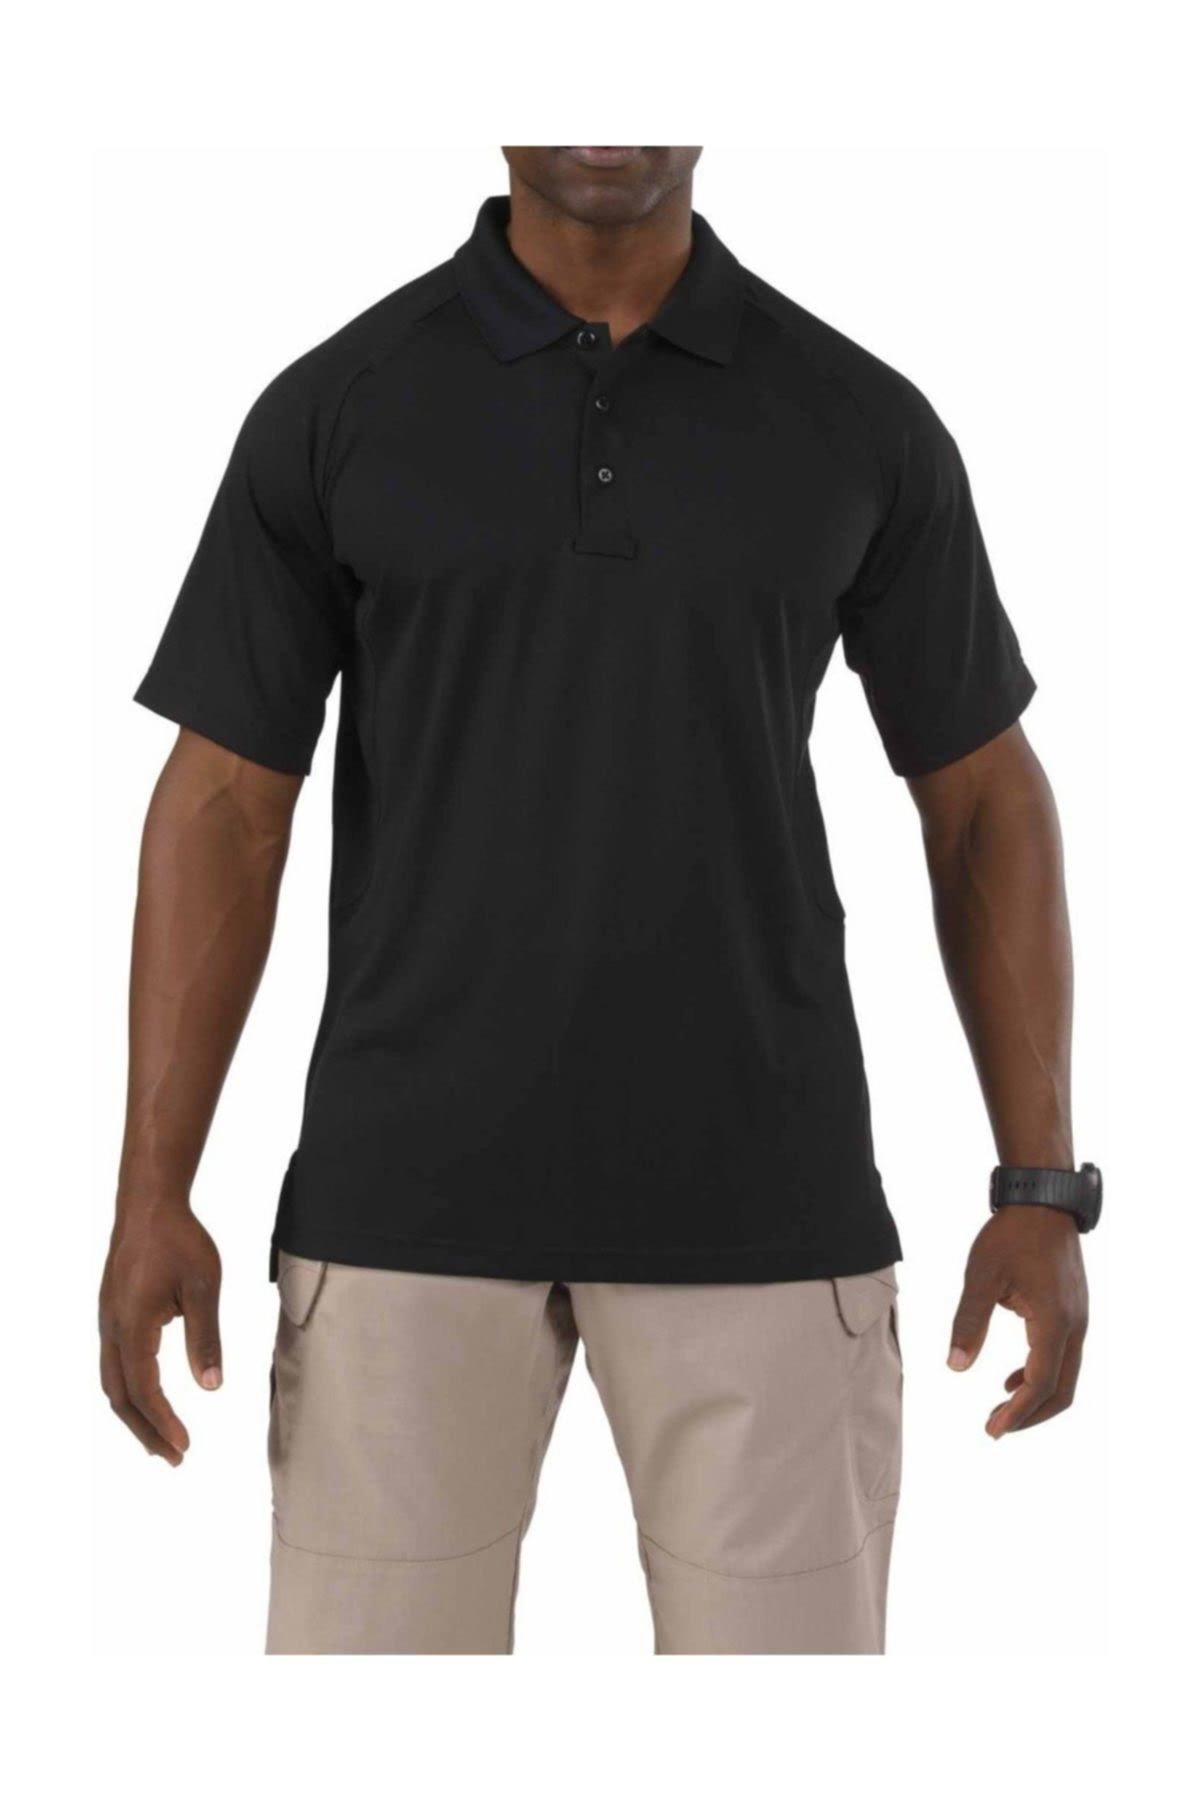 5.11 Tactical Performance Polo Short Sleeve - Black, X-Large